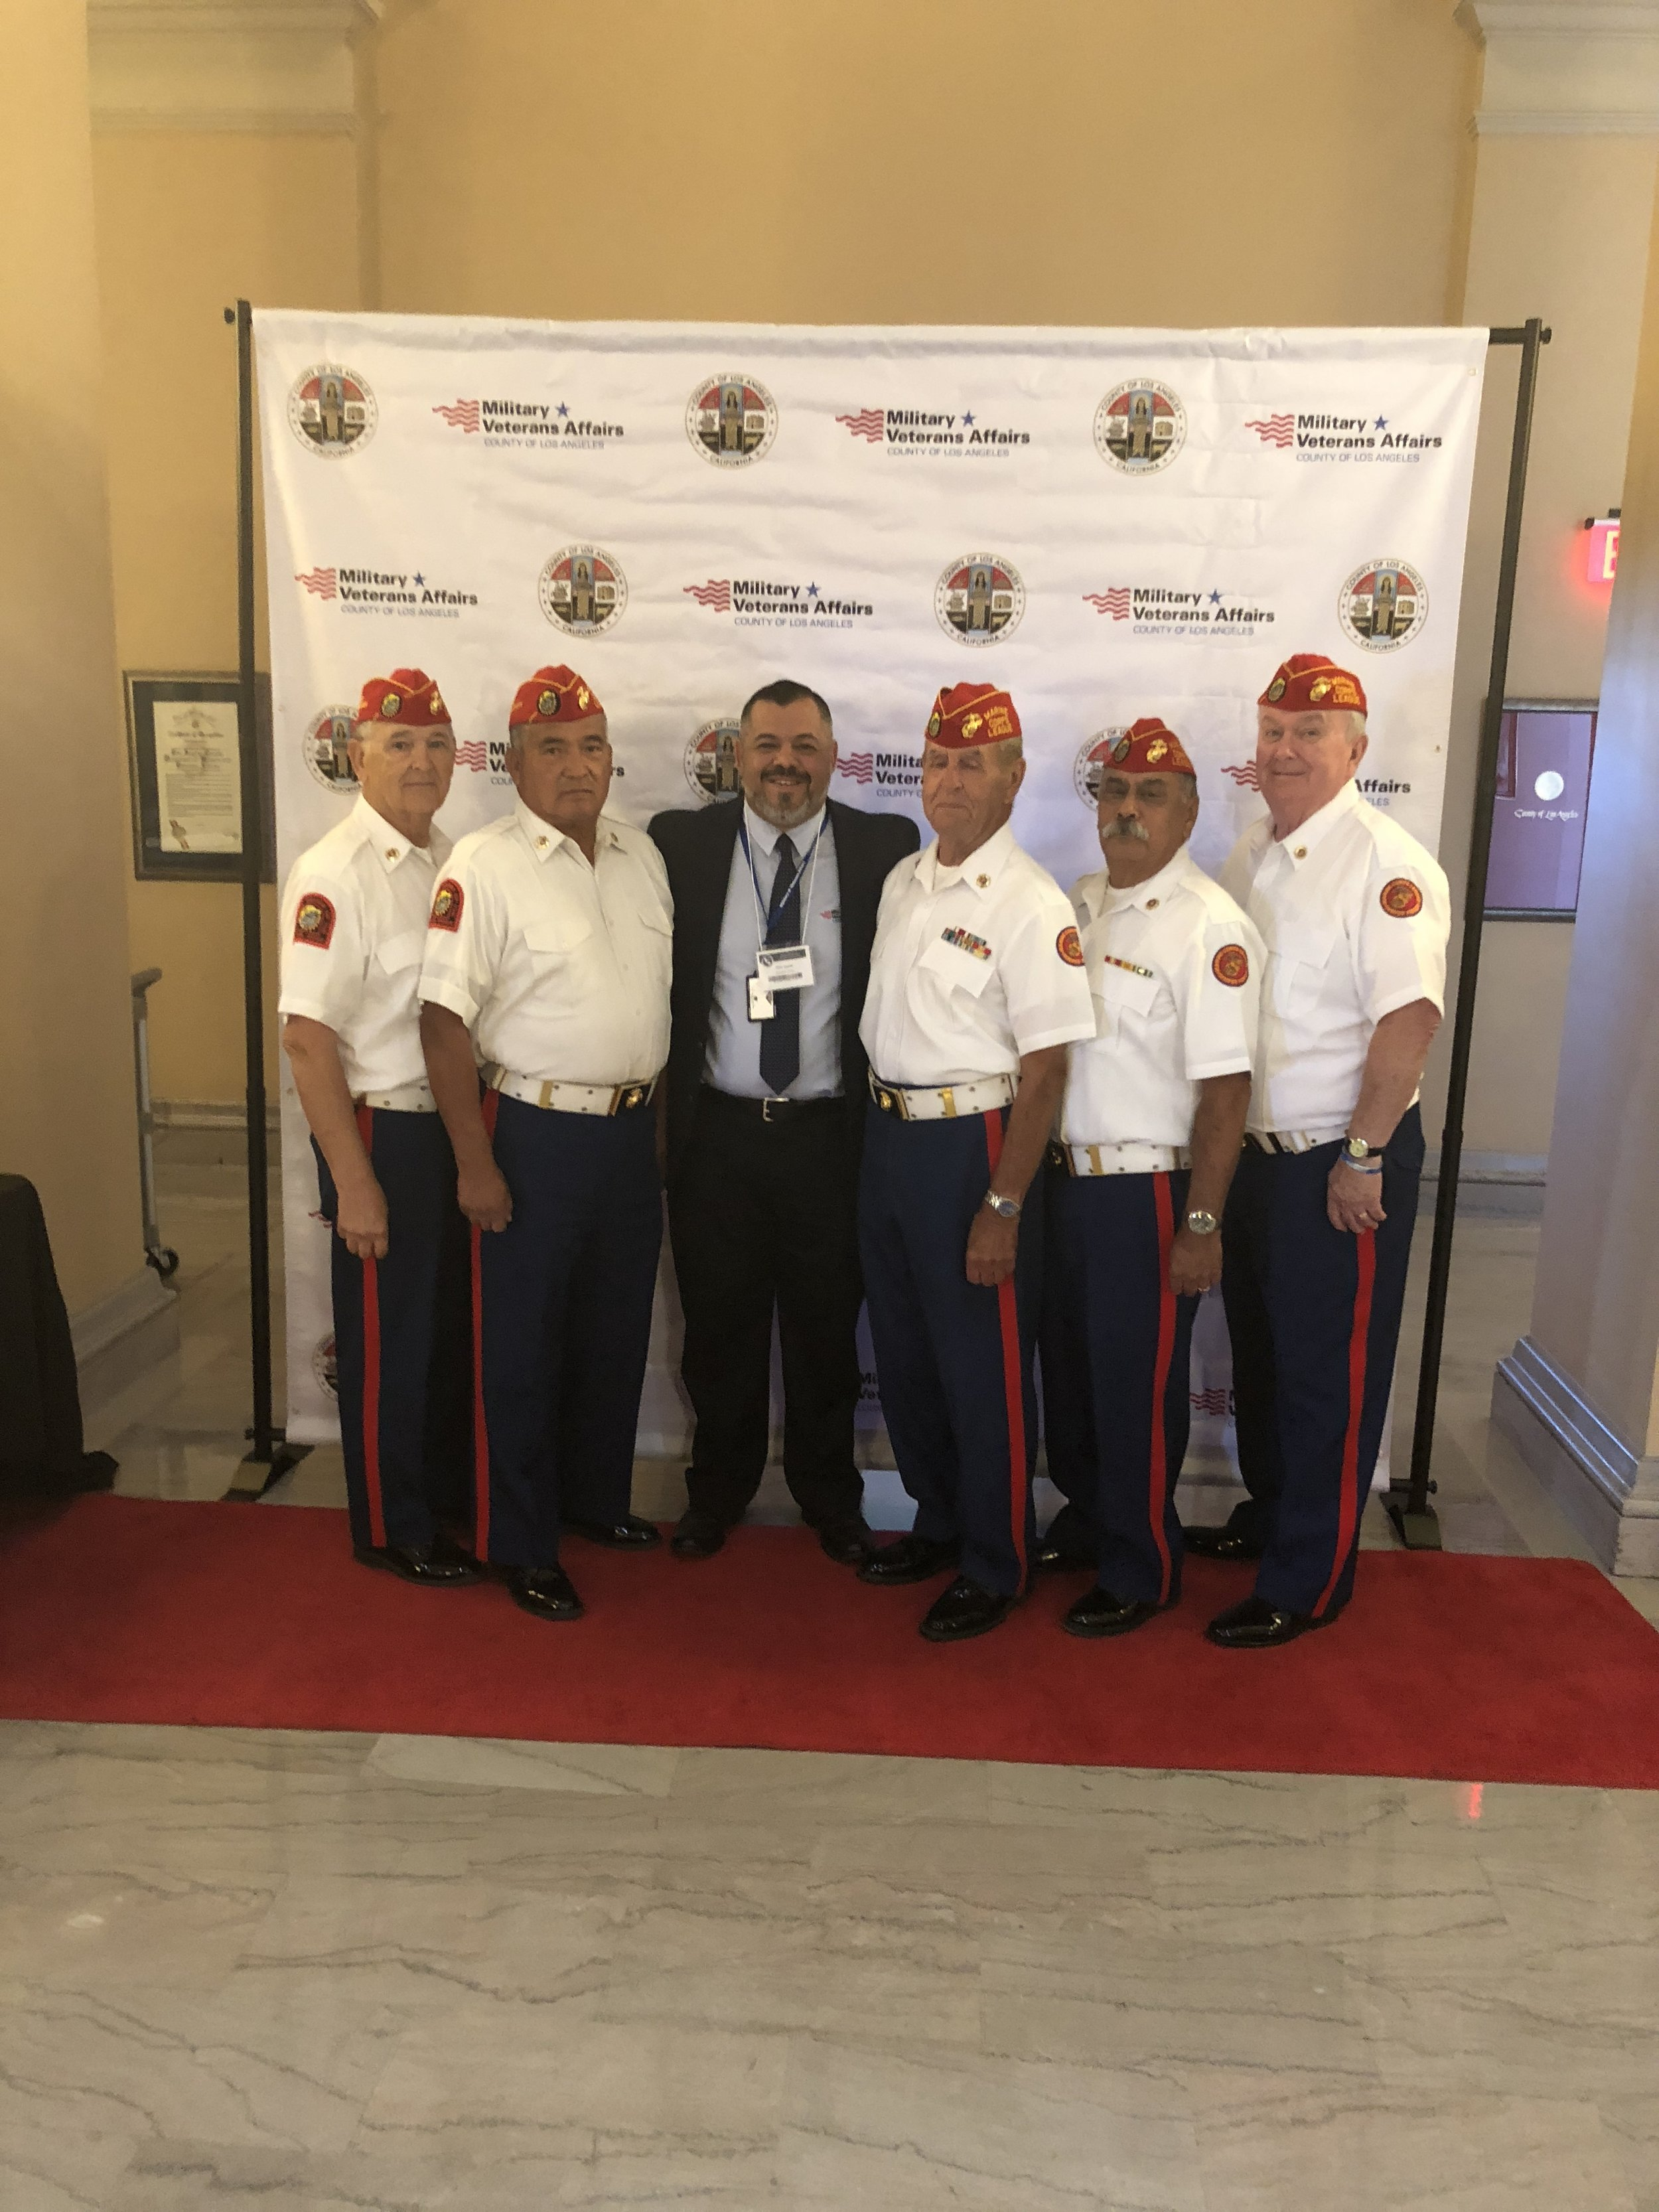 October 1, 2018   Detachment Color Guard for the Los Angeles Country Veterans Administration Fall Conference at the Bob Hope Patriotic Hall in Los Angeles.  L/R: Ben Pfister, Fausto Galvan, VA Service Supervisor Christopher Duarte, John Coley, Harry Hodges, and Dick Jennings.